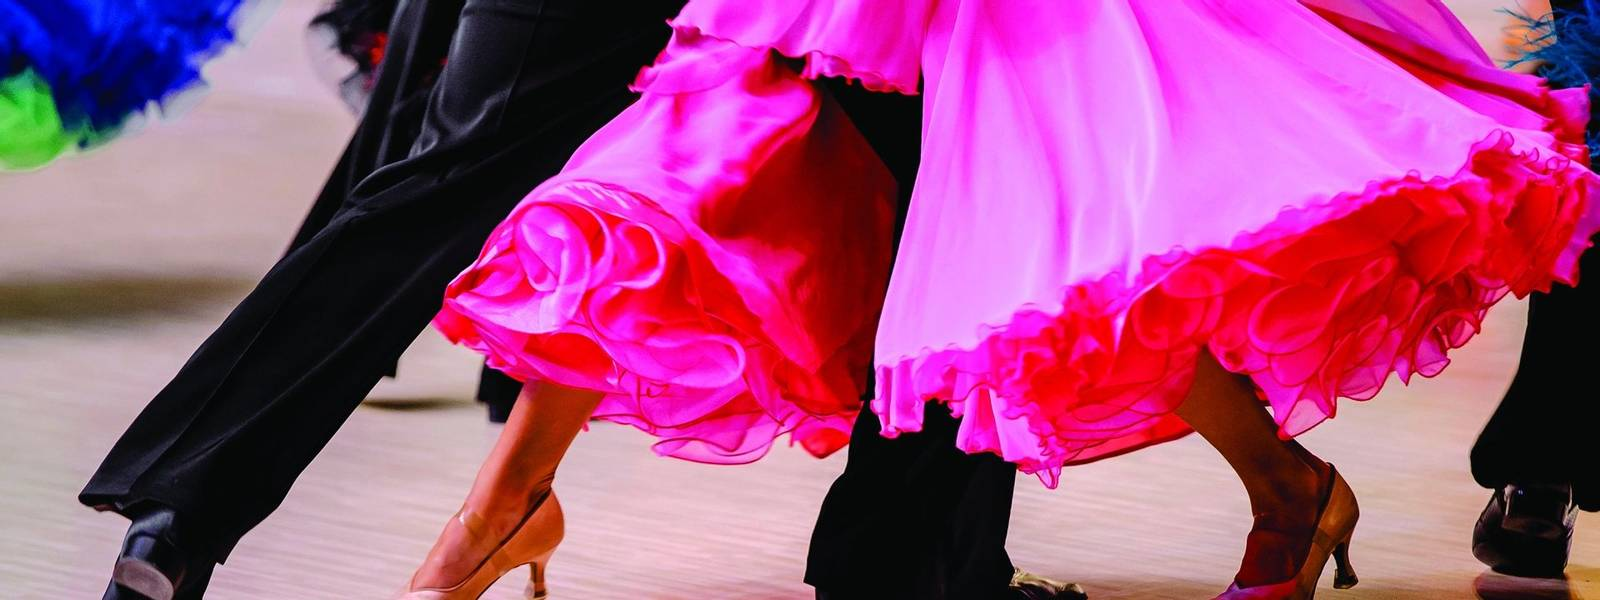 competitions in ballroom dancing. black tailcoat and pink ball gown